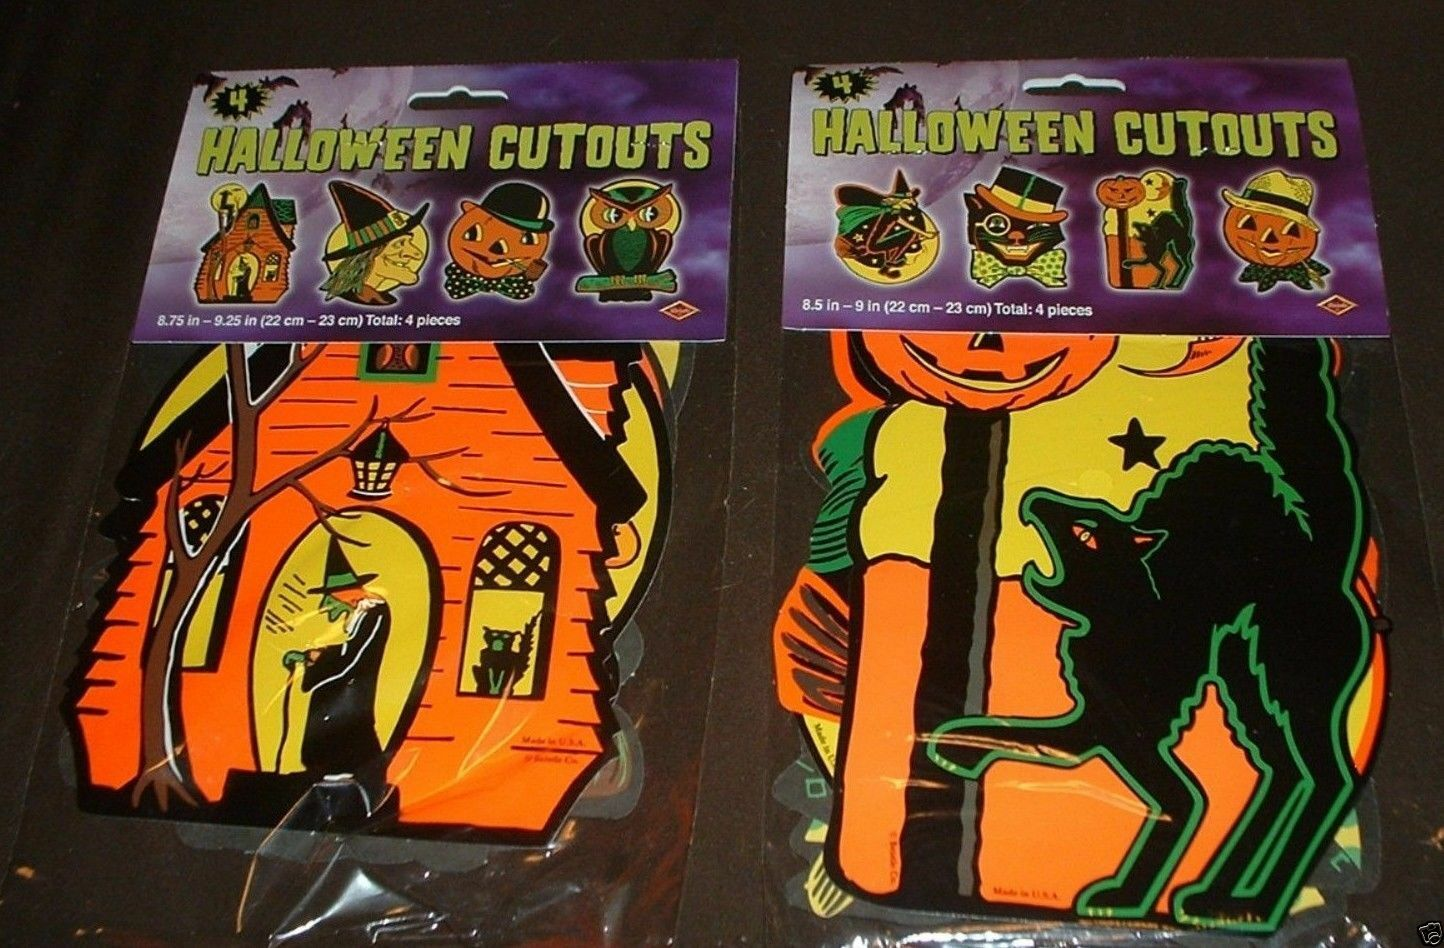 8 vintage halloween decorations packaged retro styled